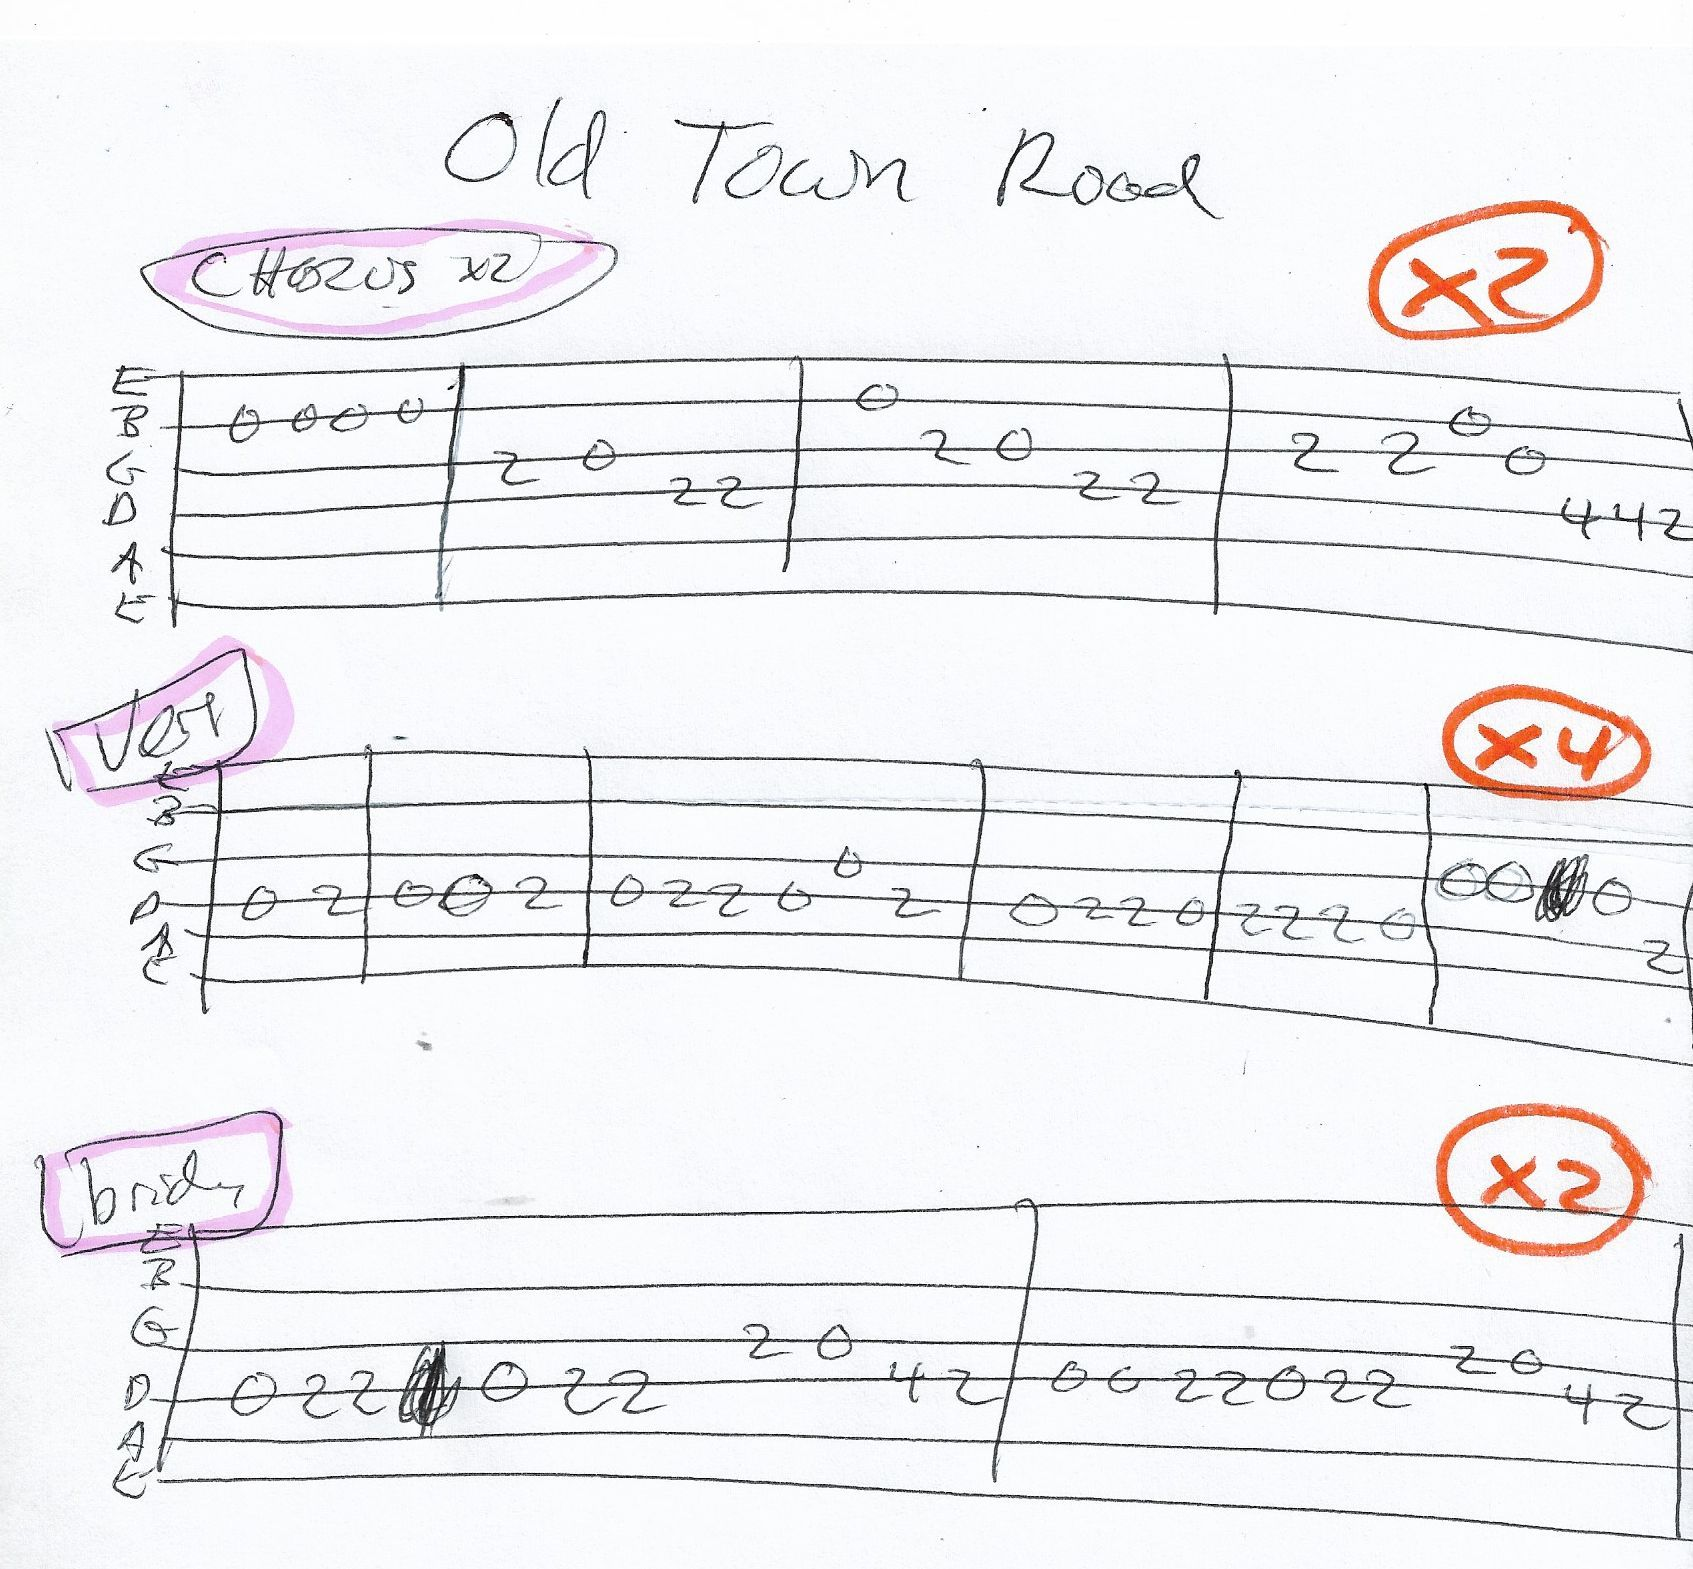 Old Town Road Lil Nas X Guitar Melody Tab Capo 4th With